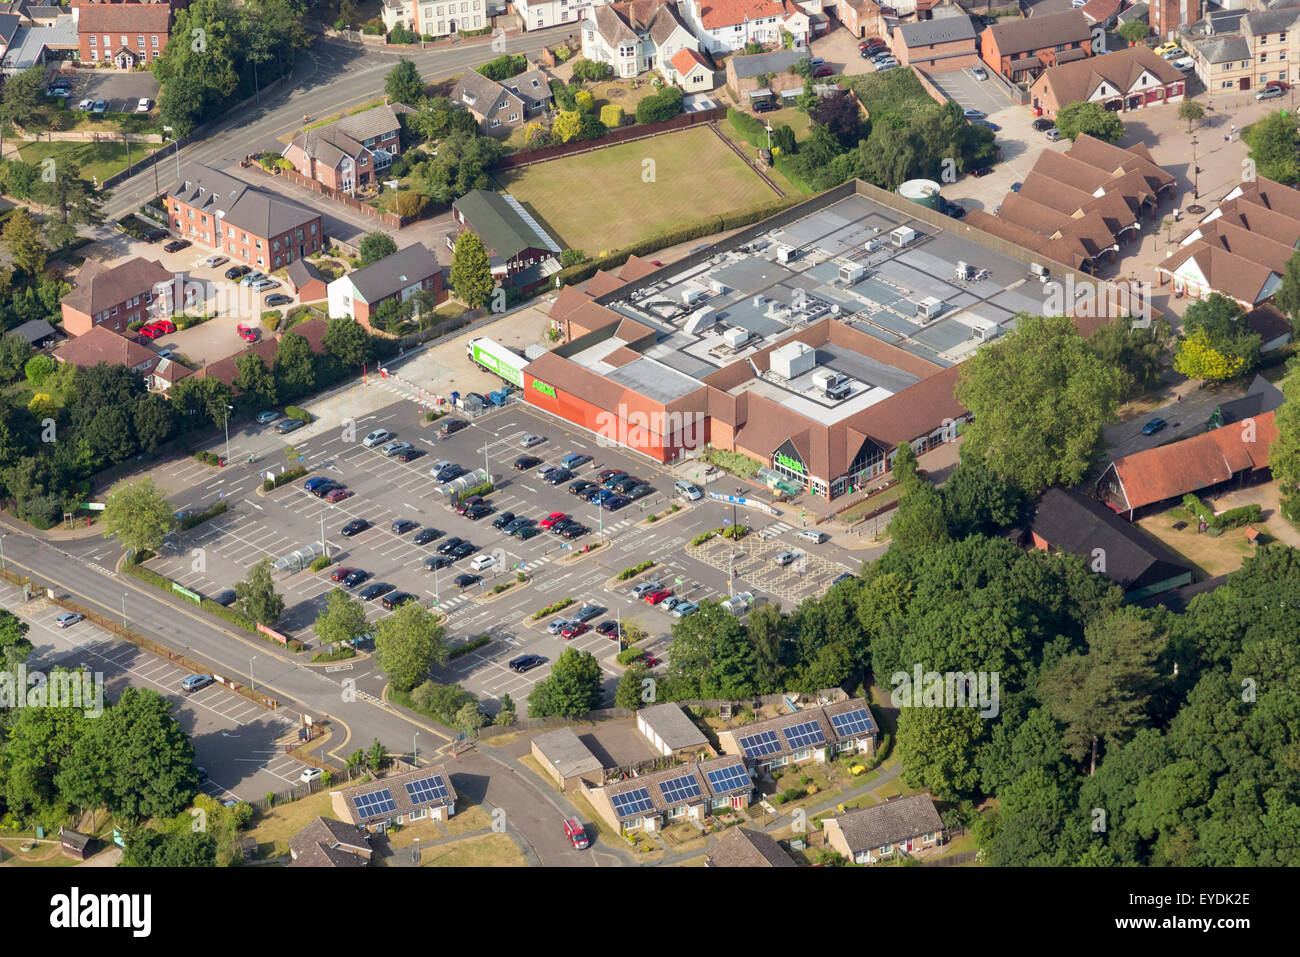 aerial photo view of Asda supermarket - Stock Image